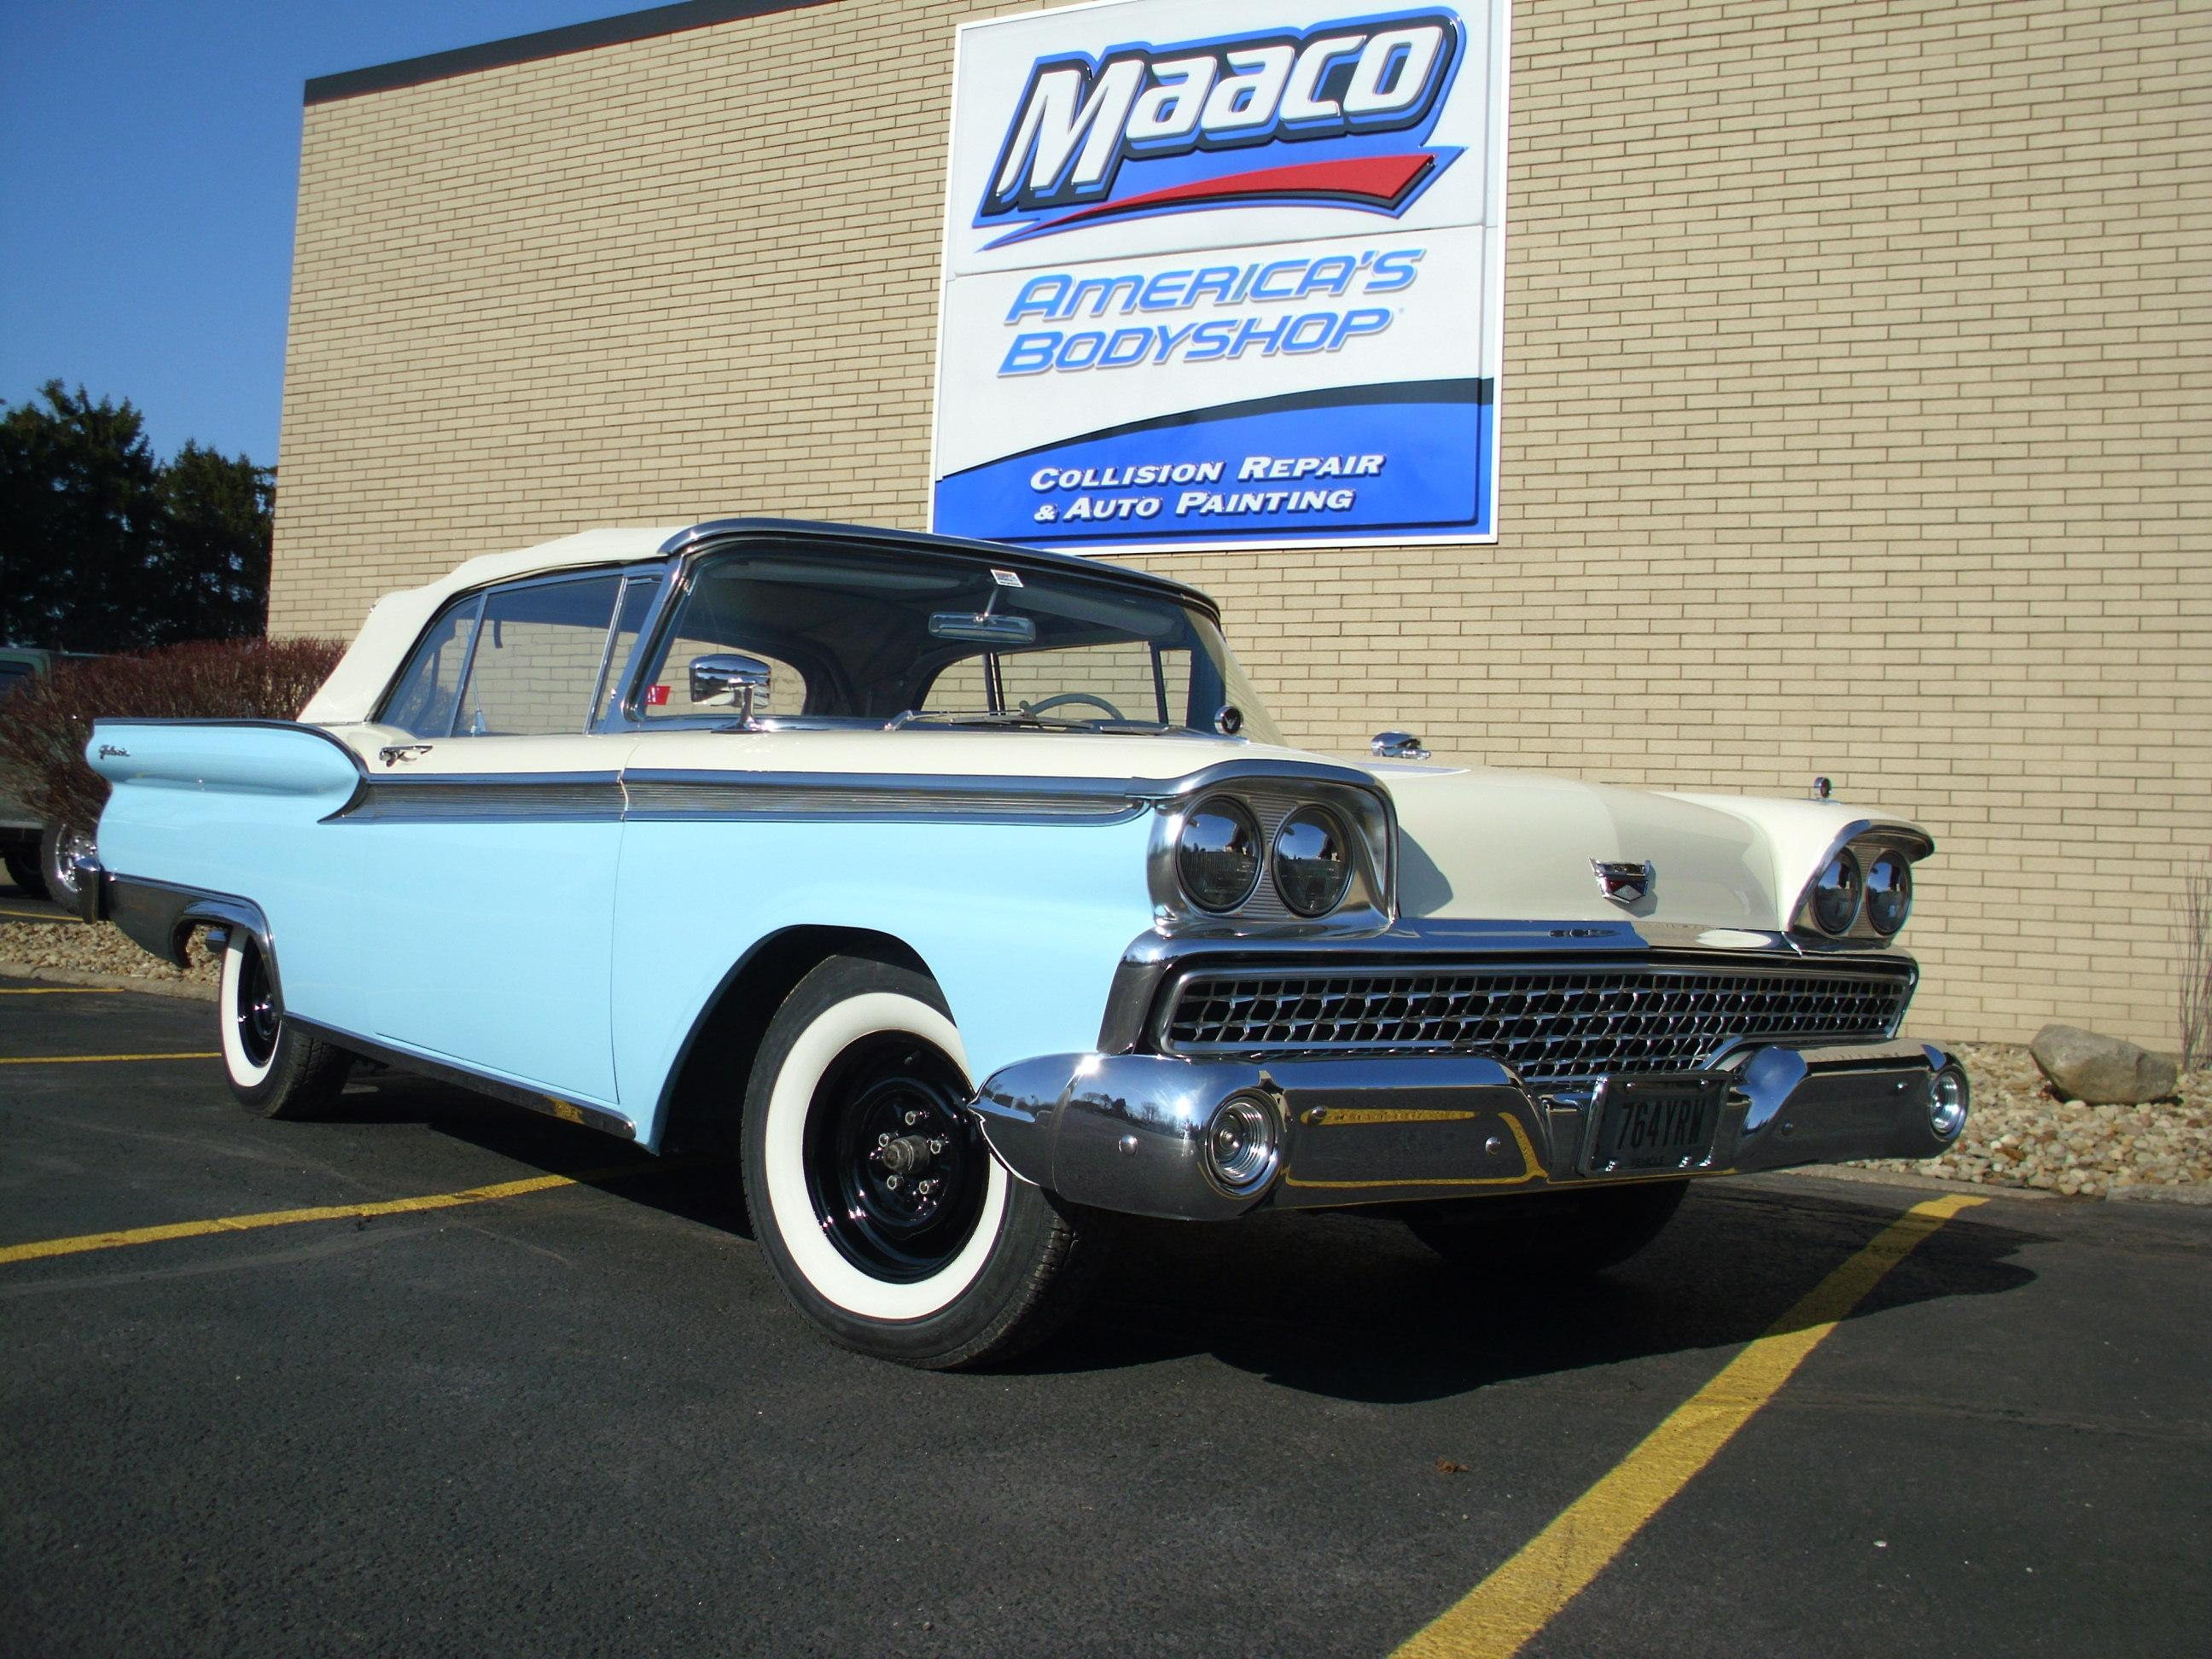 Maaco Collision Repair & Auto Painting, North Canton Ohio